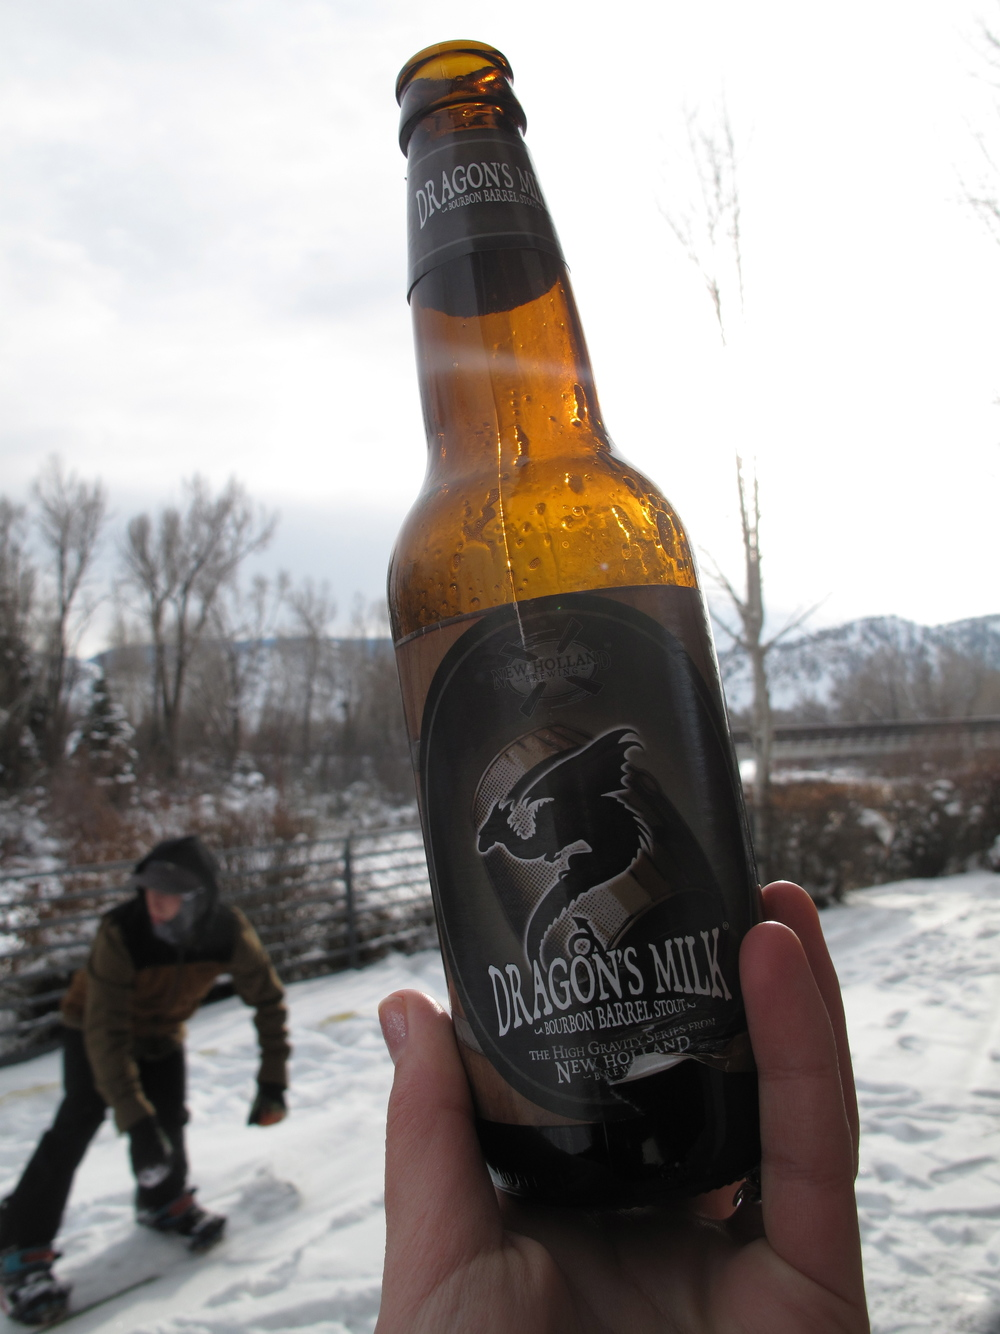 Snowboarding and beer is the perfect combo.